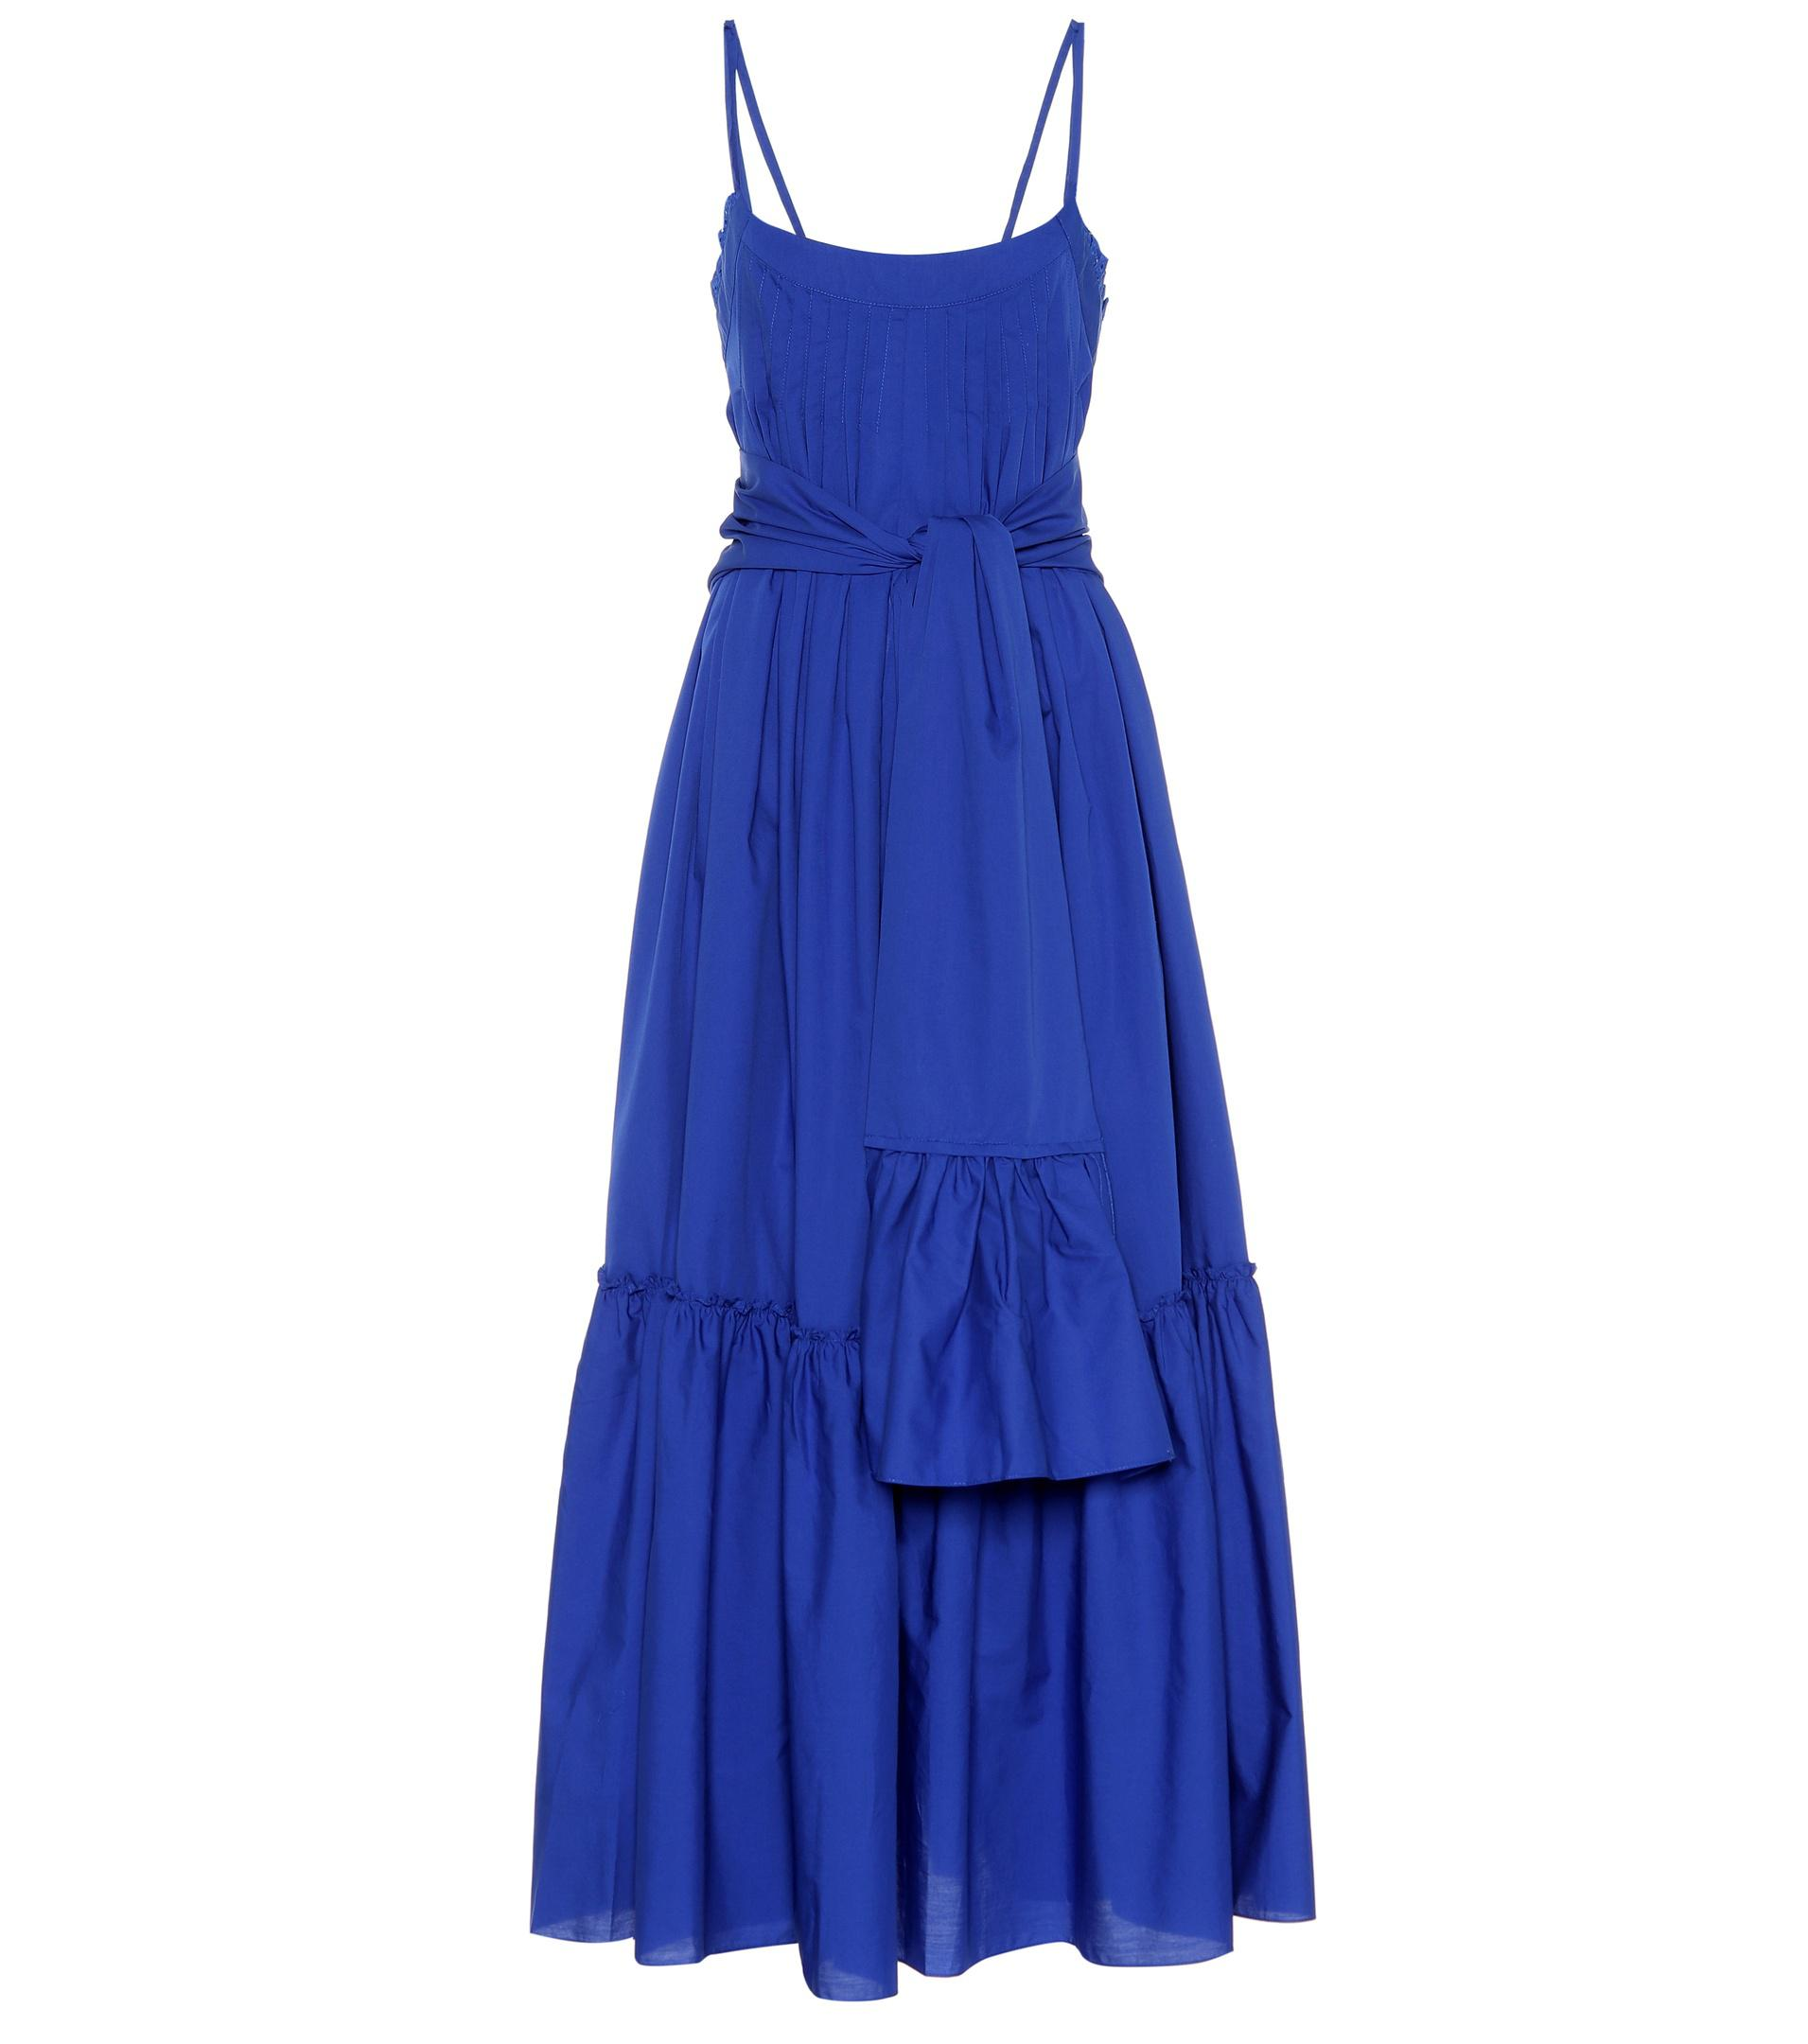 Adriadne Ruffled Cotton-poplin Maxi Dress - Cobalt blue Three Graces London uO0N7